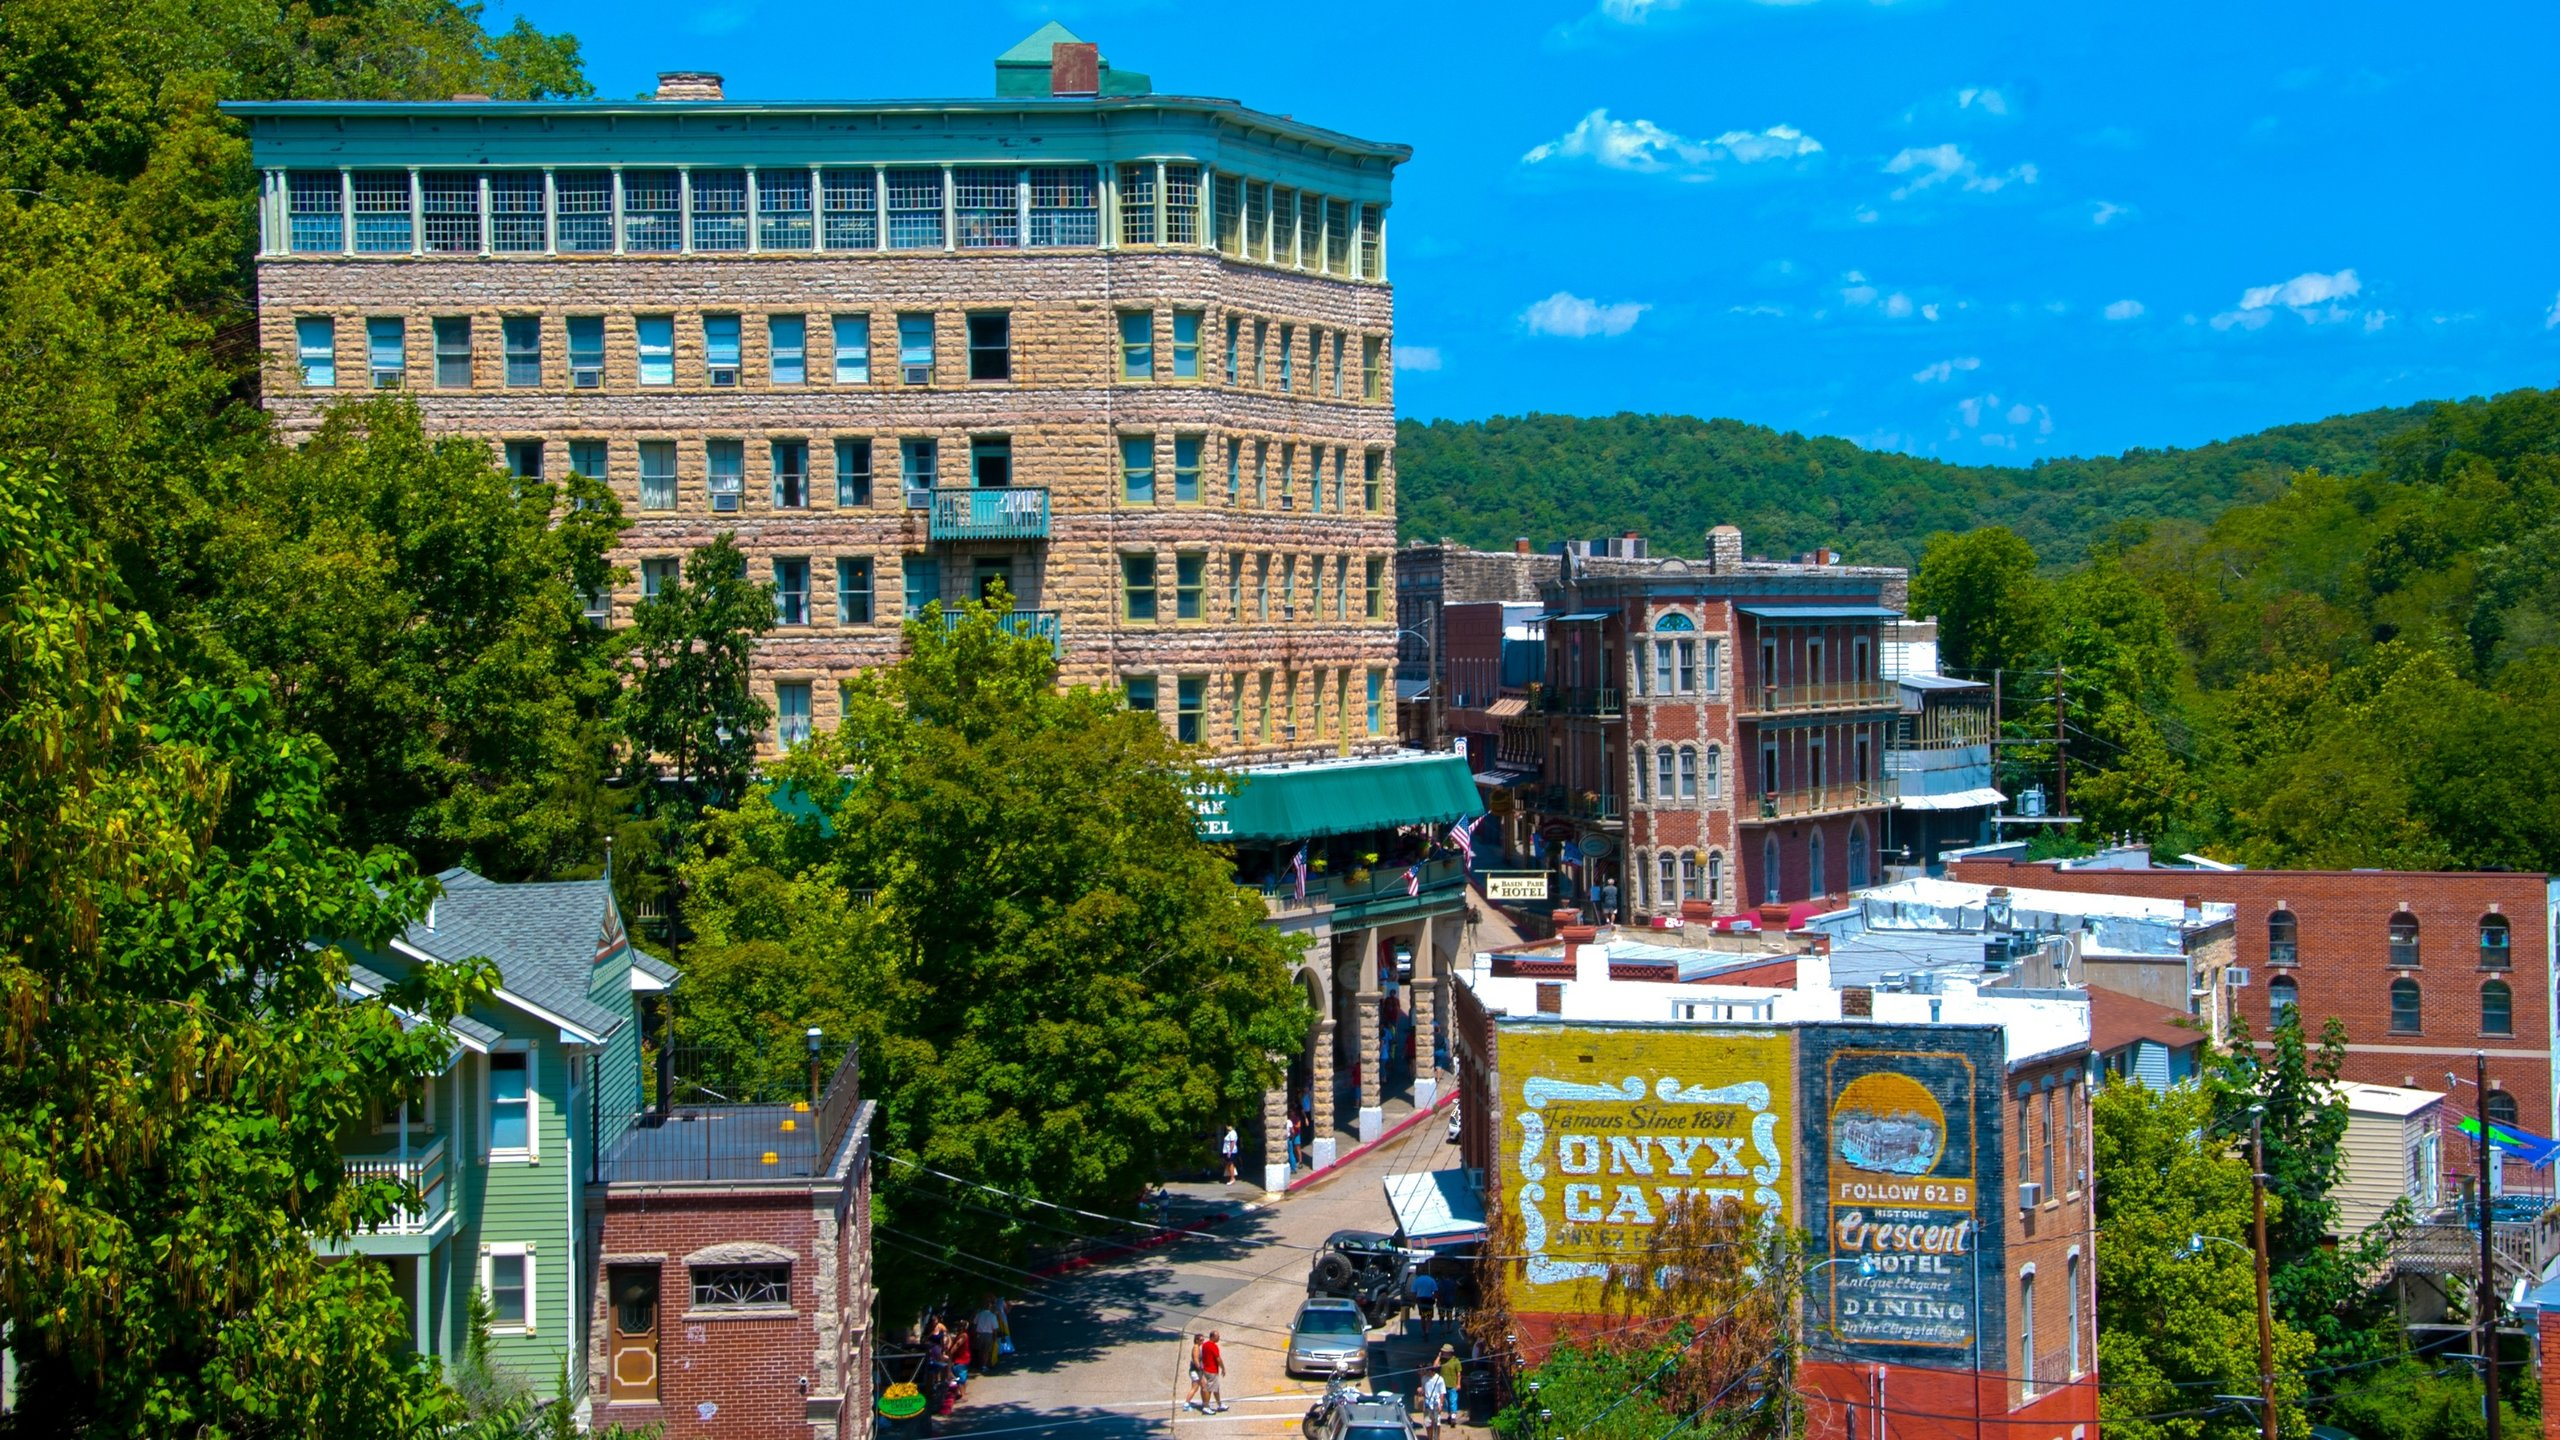 Top Hotels In Eureka Springs Ar From 56 Free Cancellation On Select Hotels Expedia